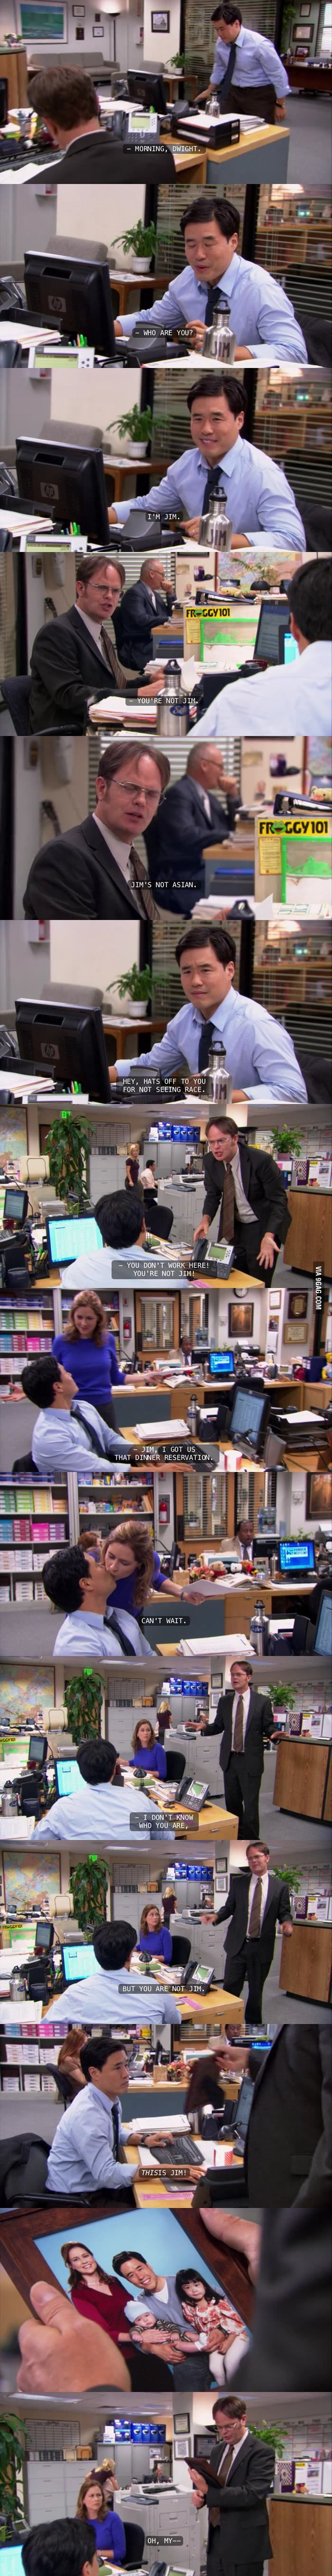 412 best the office images on pinterest dunder mifflin funny